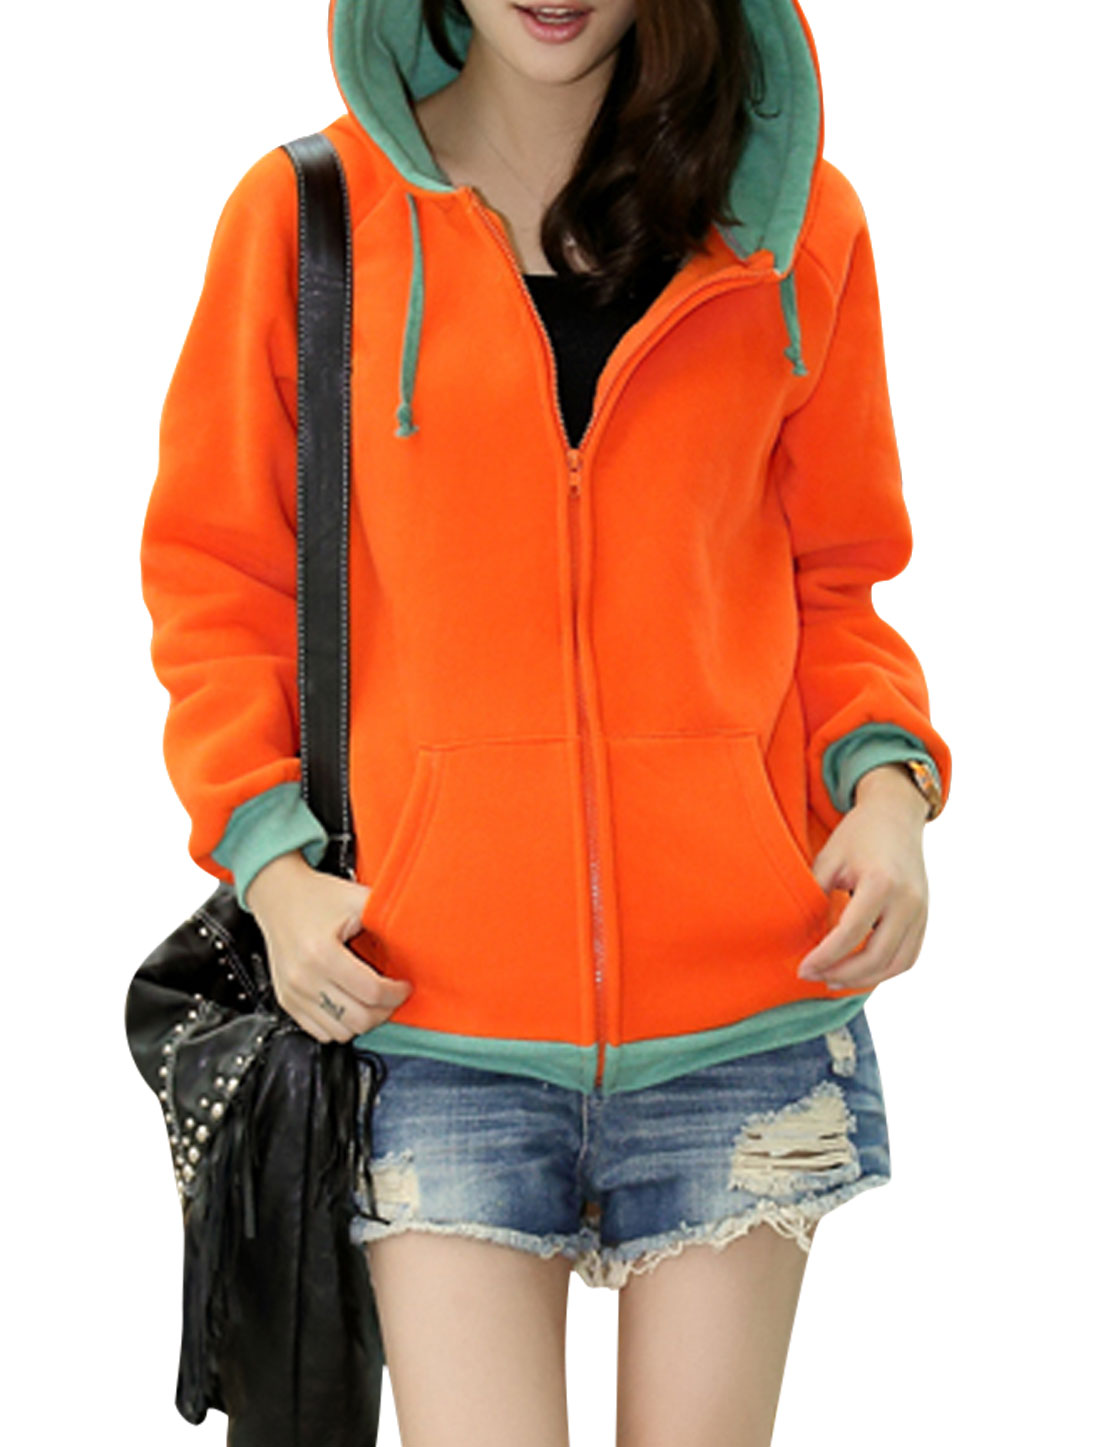 Ladies Orange Full Sleeves Zippered Front Ribbed Cuffs Hoodie S